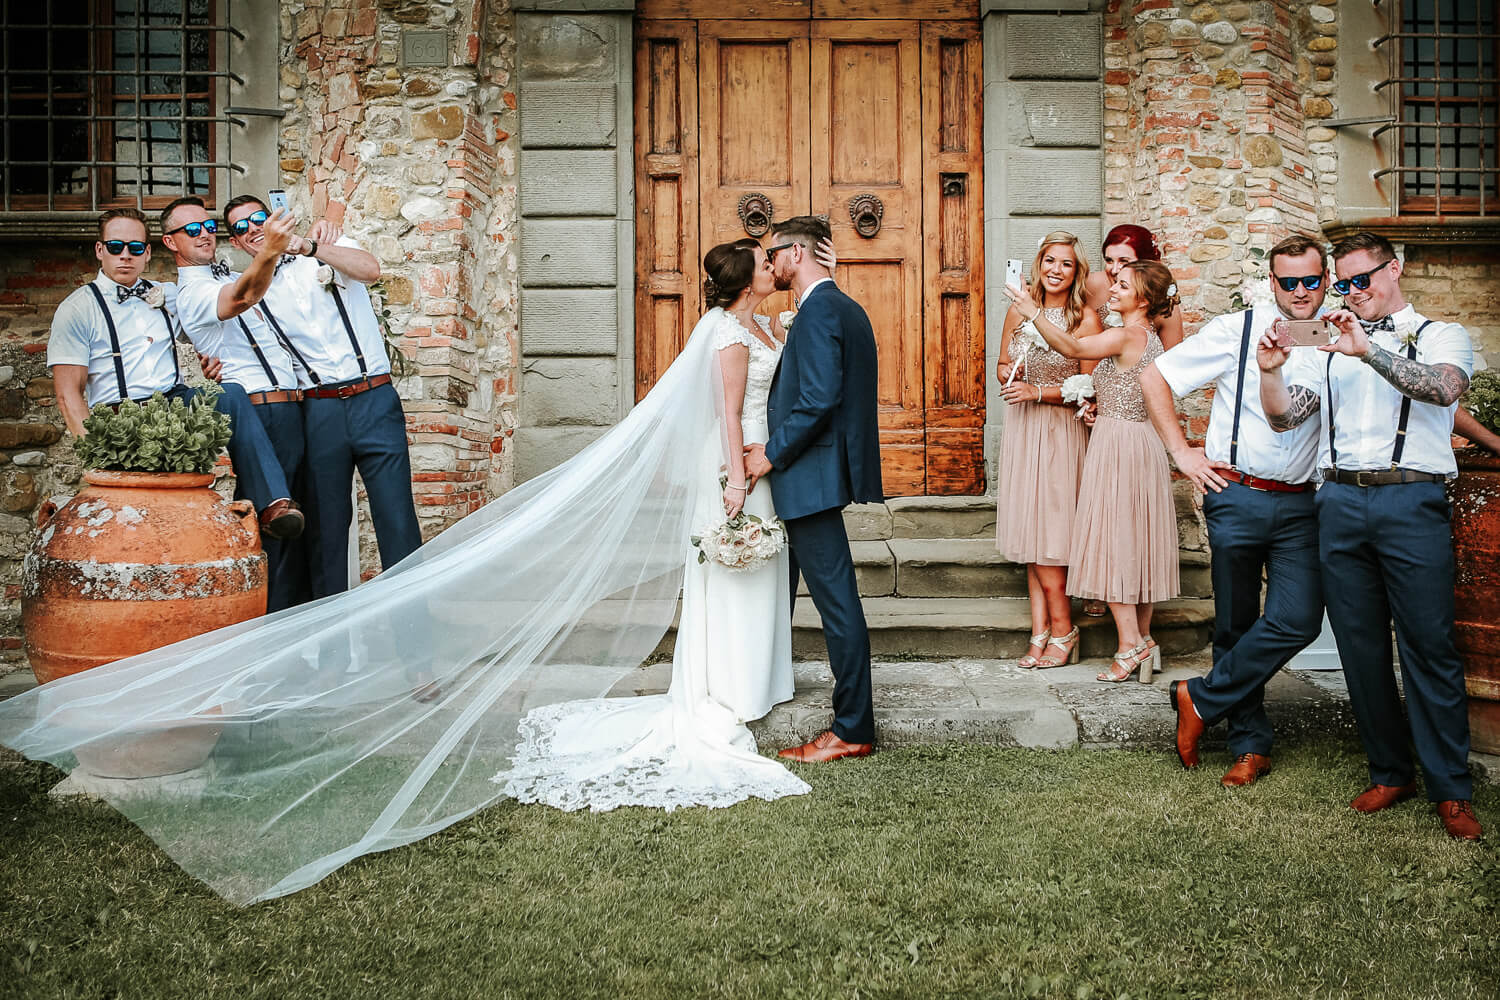 Bridal party group photography castello di bibbione wedding in tuscany